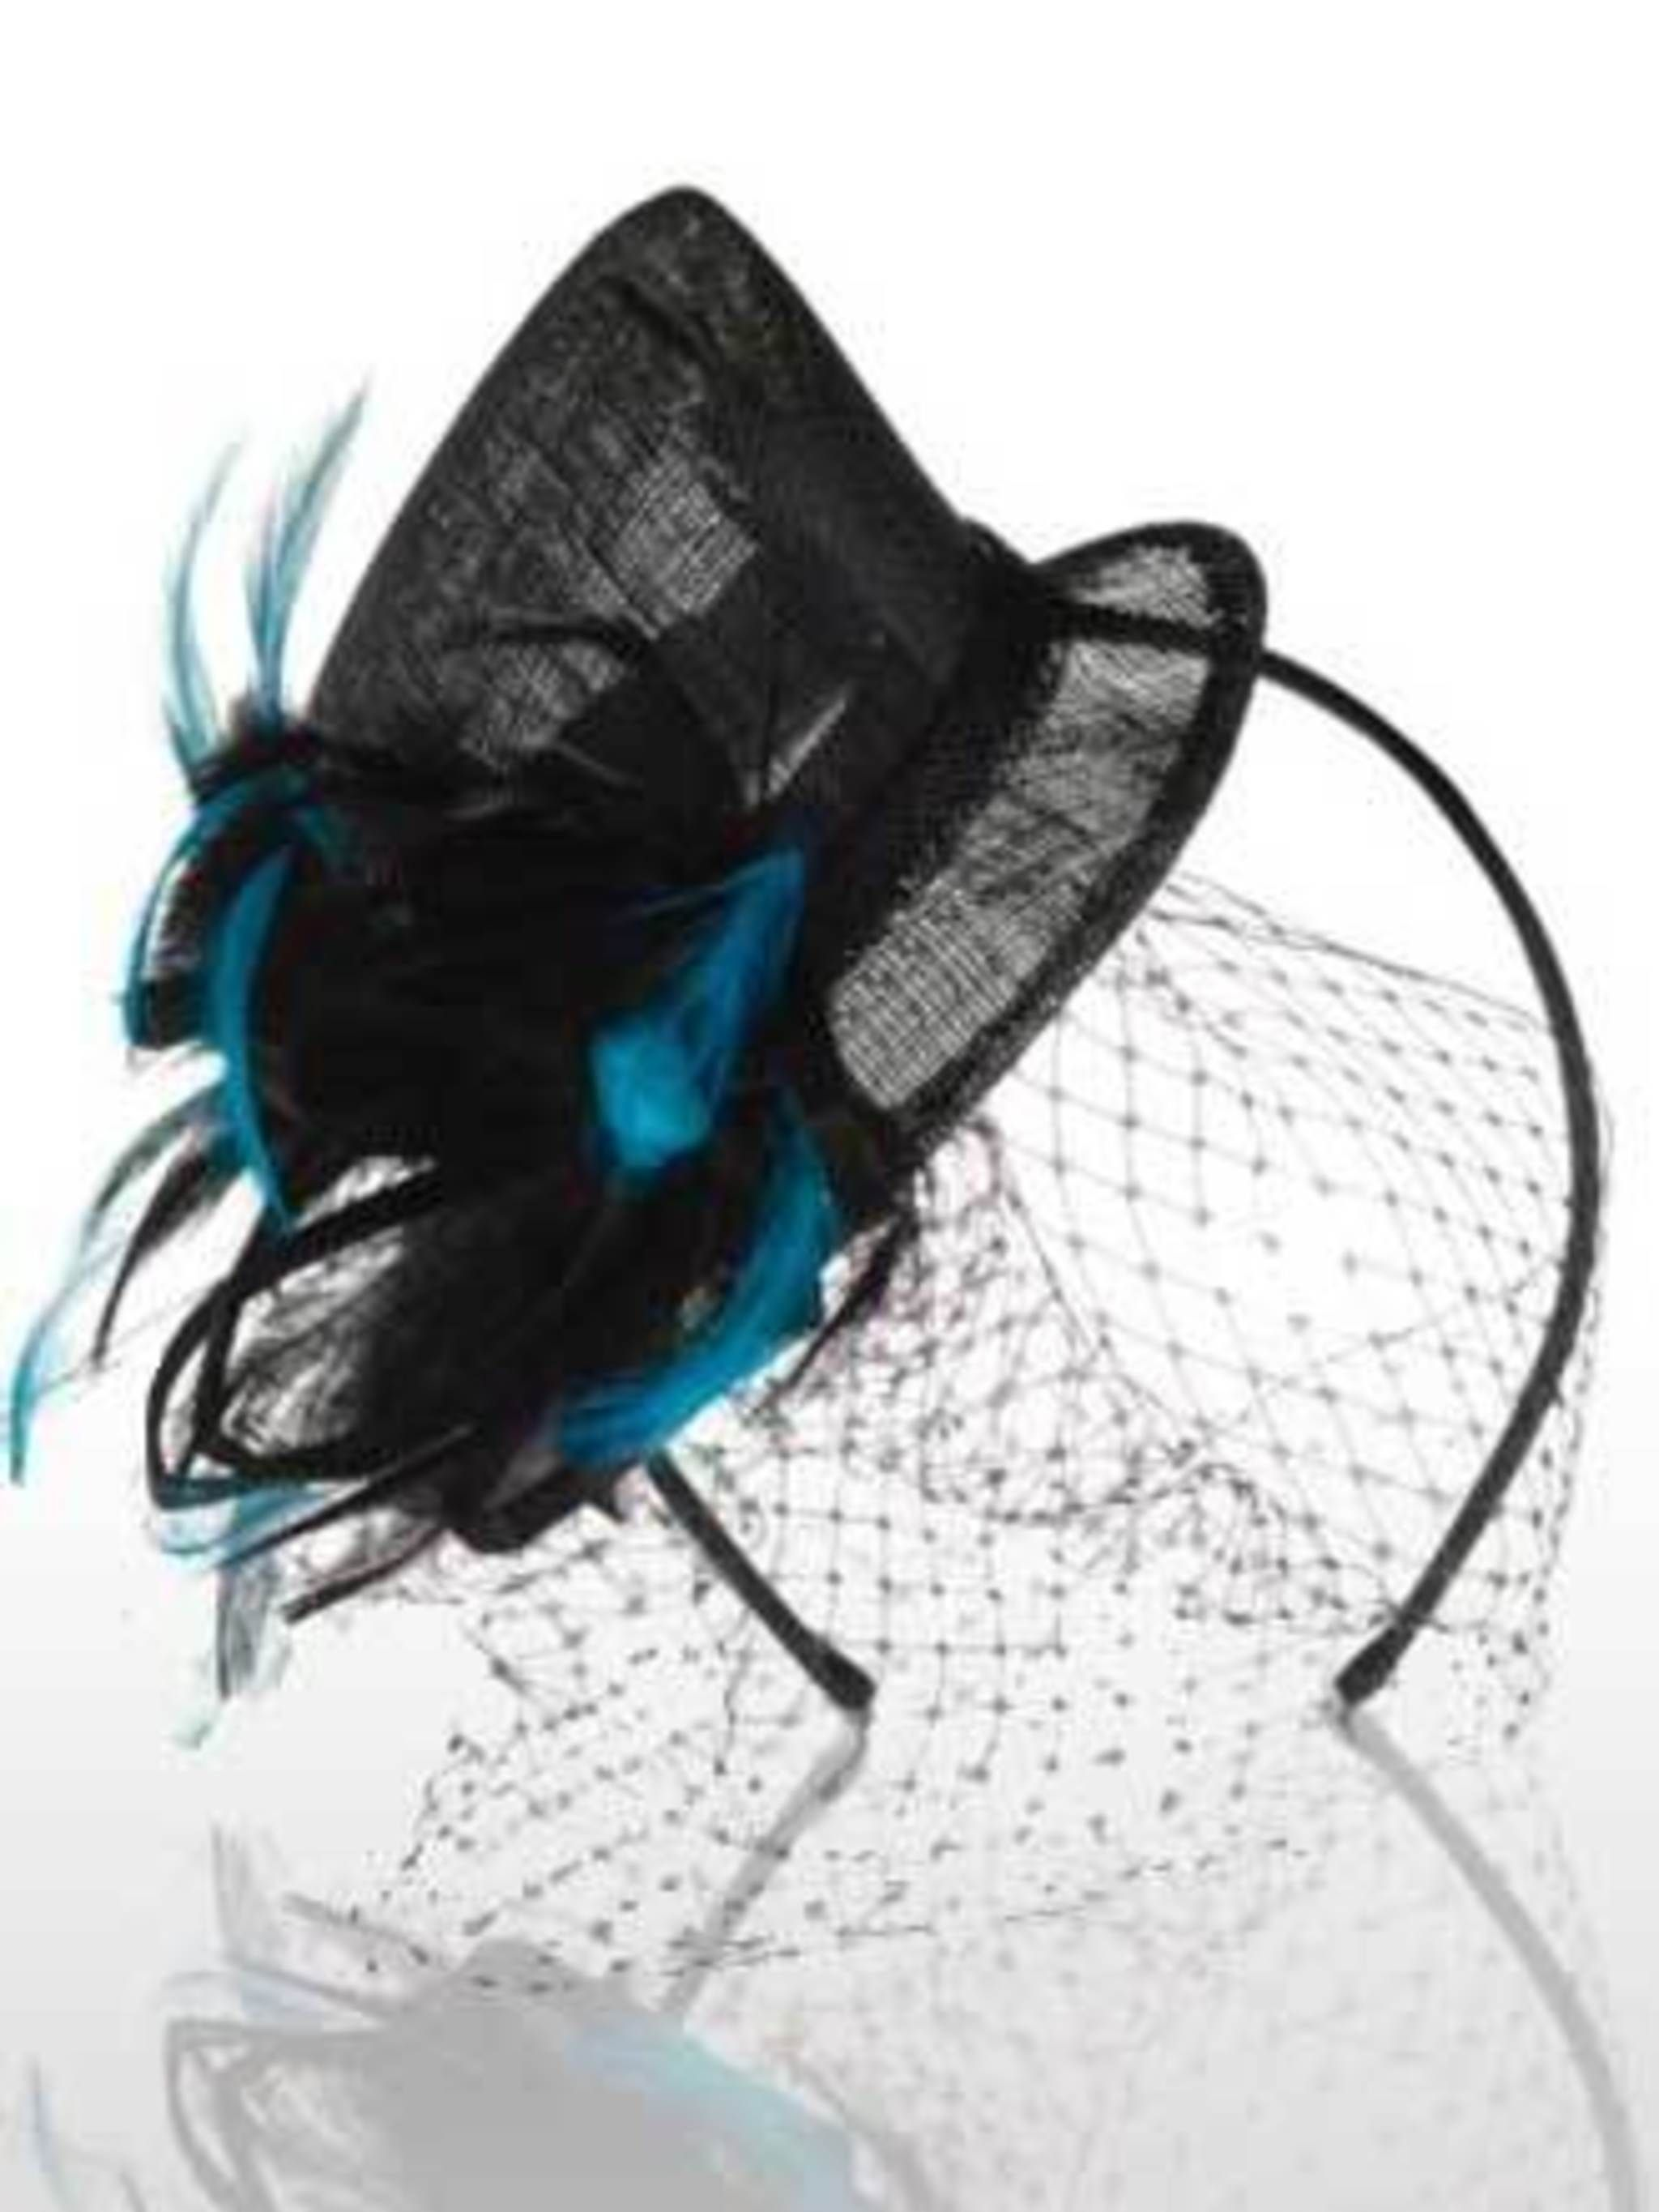 "<p>Fascinator, £28 by <a href=""http://www.monsoon.co.uk/invt/49143503&bklist=icat,5,shop,accessorize,hairaccz,fascinations"">Accessorize</a></p><p>Usually reserved for weddings and christenings, Luella has made fascinators the It accessory for summer.<"